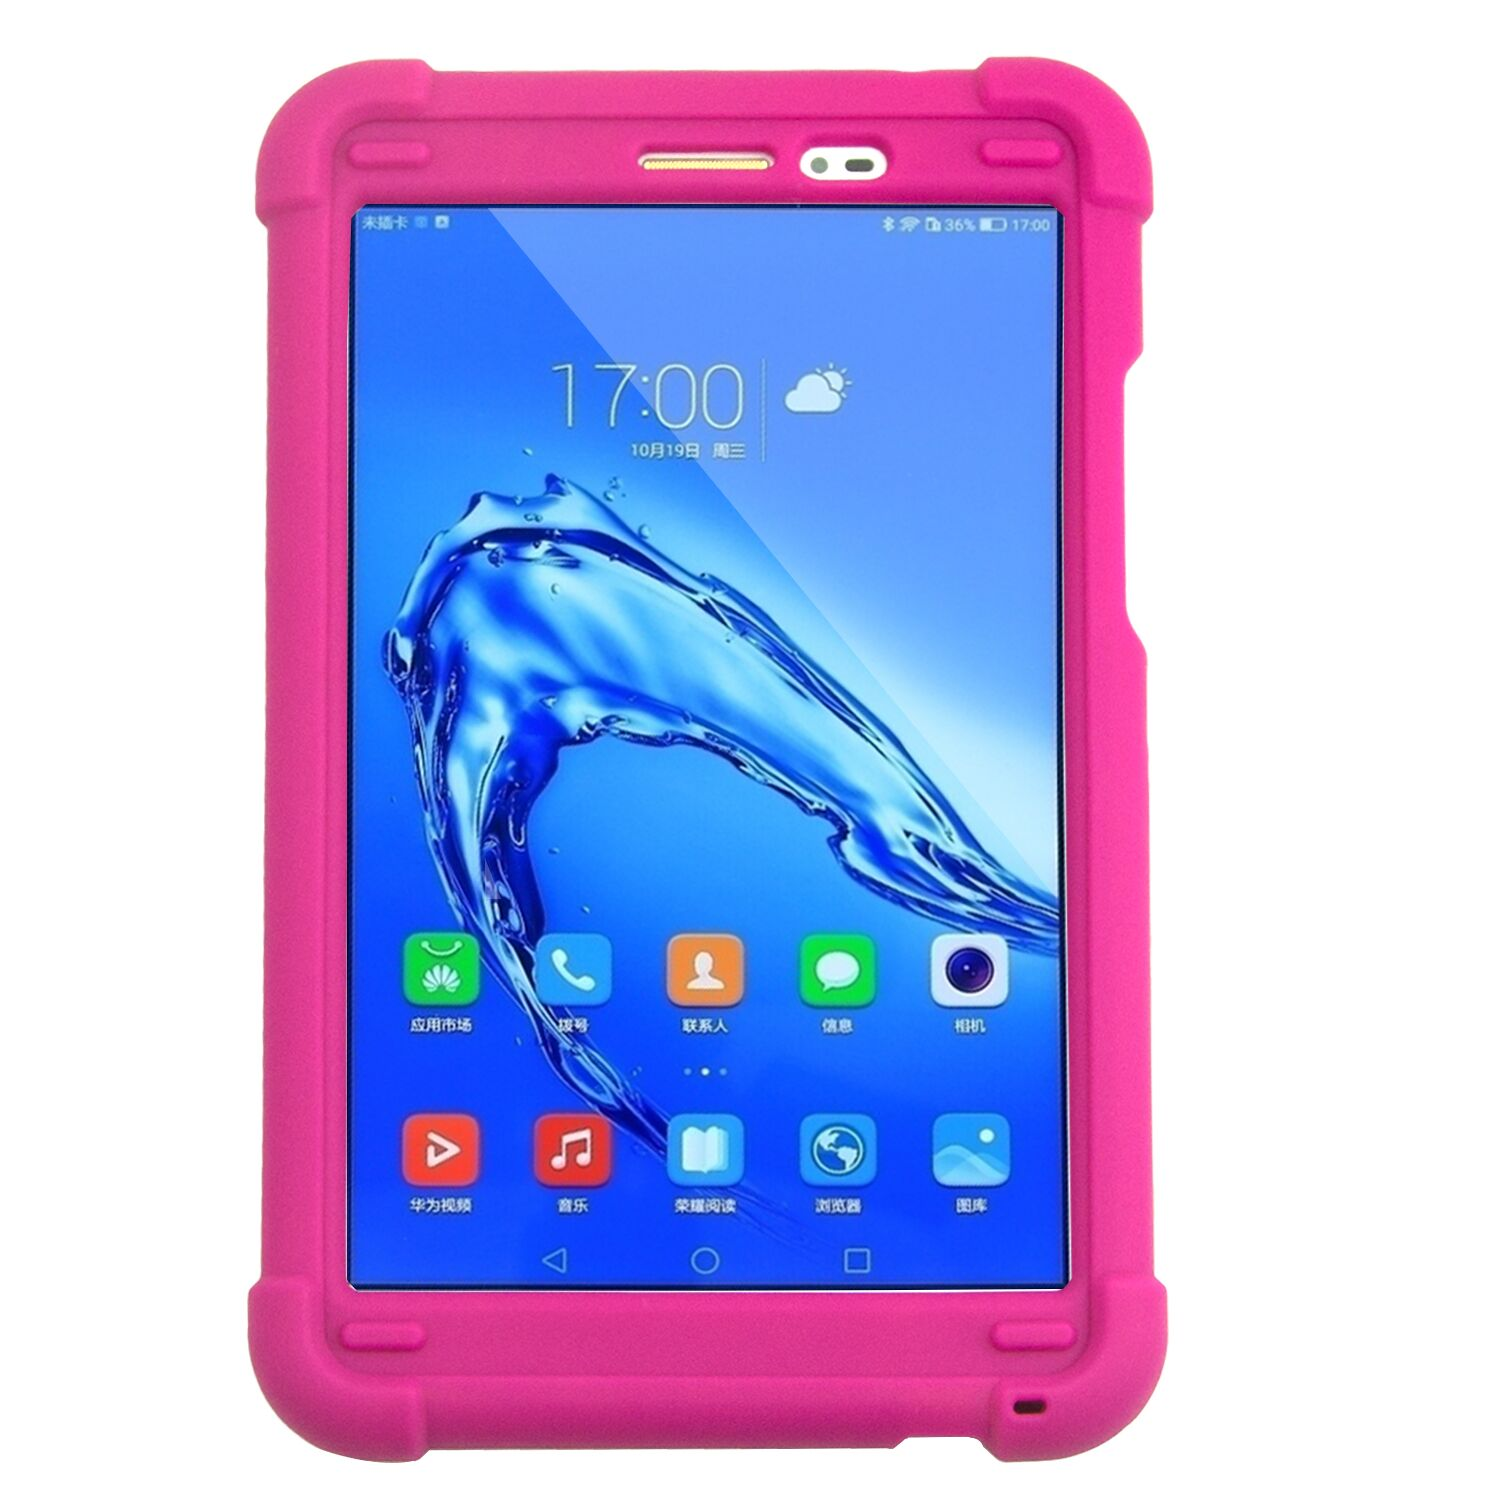 MingShore Rugged Cover For Huawei MediaPad T2 8 Pro JDN-L01 Honor Pad 2 Tablet 2 JDN-W09 JDN-AL00 8.0inch Silicone Tablet Case cover case for huawei mediapad m3 youth lite 8 cpn w09 cpn al00 8 tablet protective cover skin free stylus free film